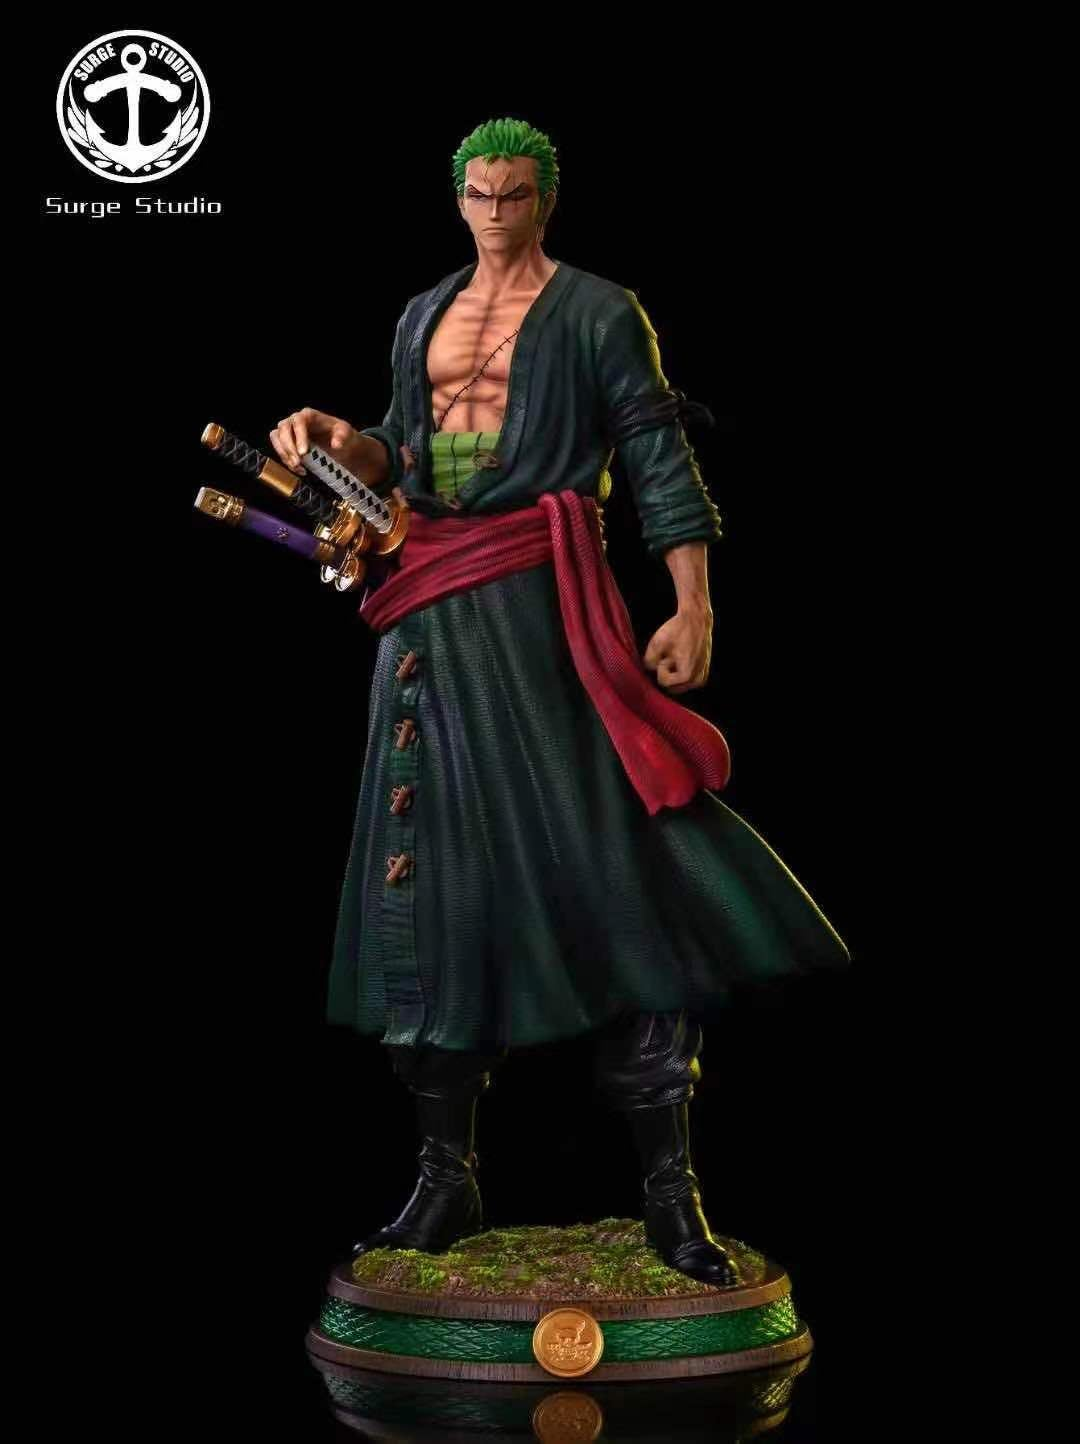 Image of [Early-Bird][Pre-Order]One Piece Surge Studio Zoro 1:6 Resin Statue